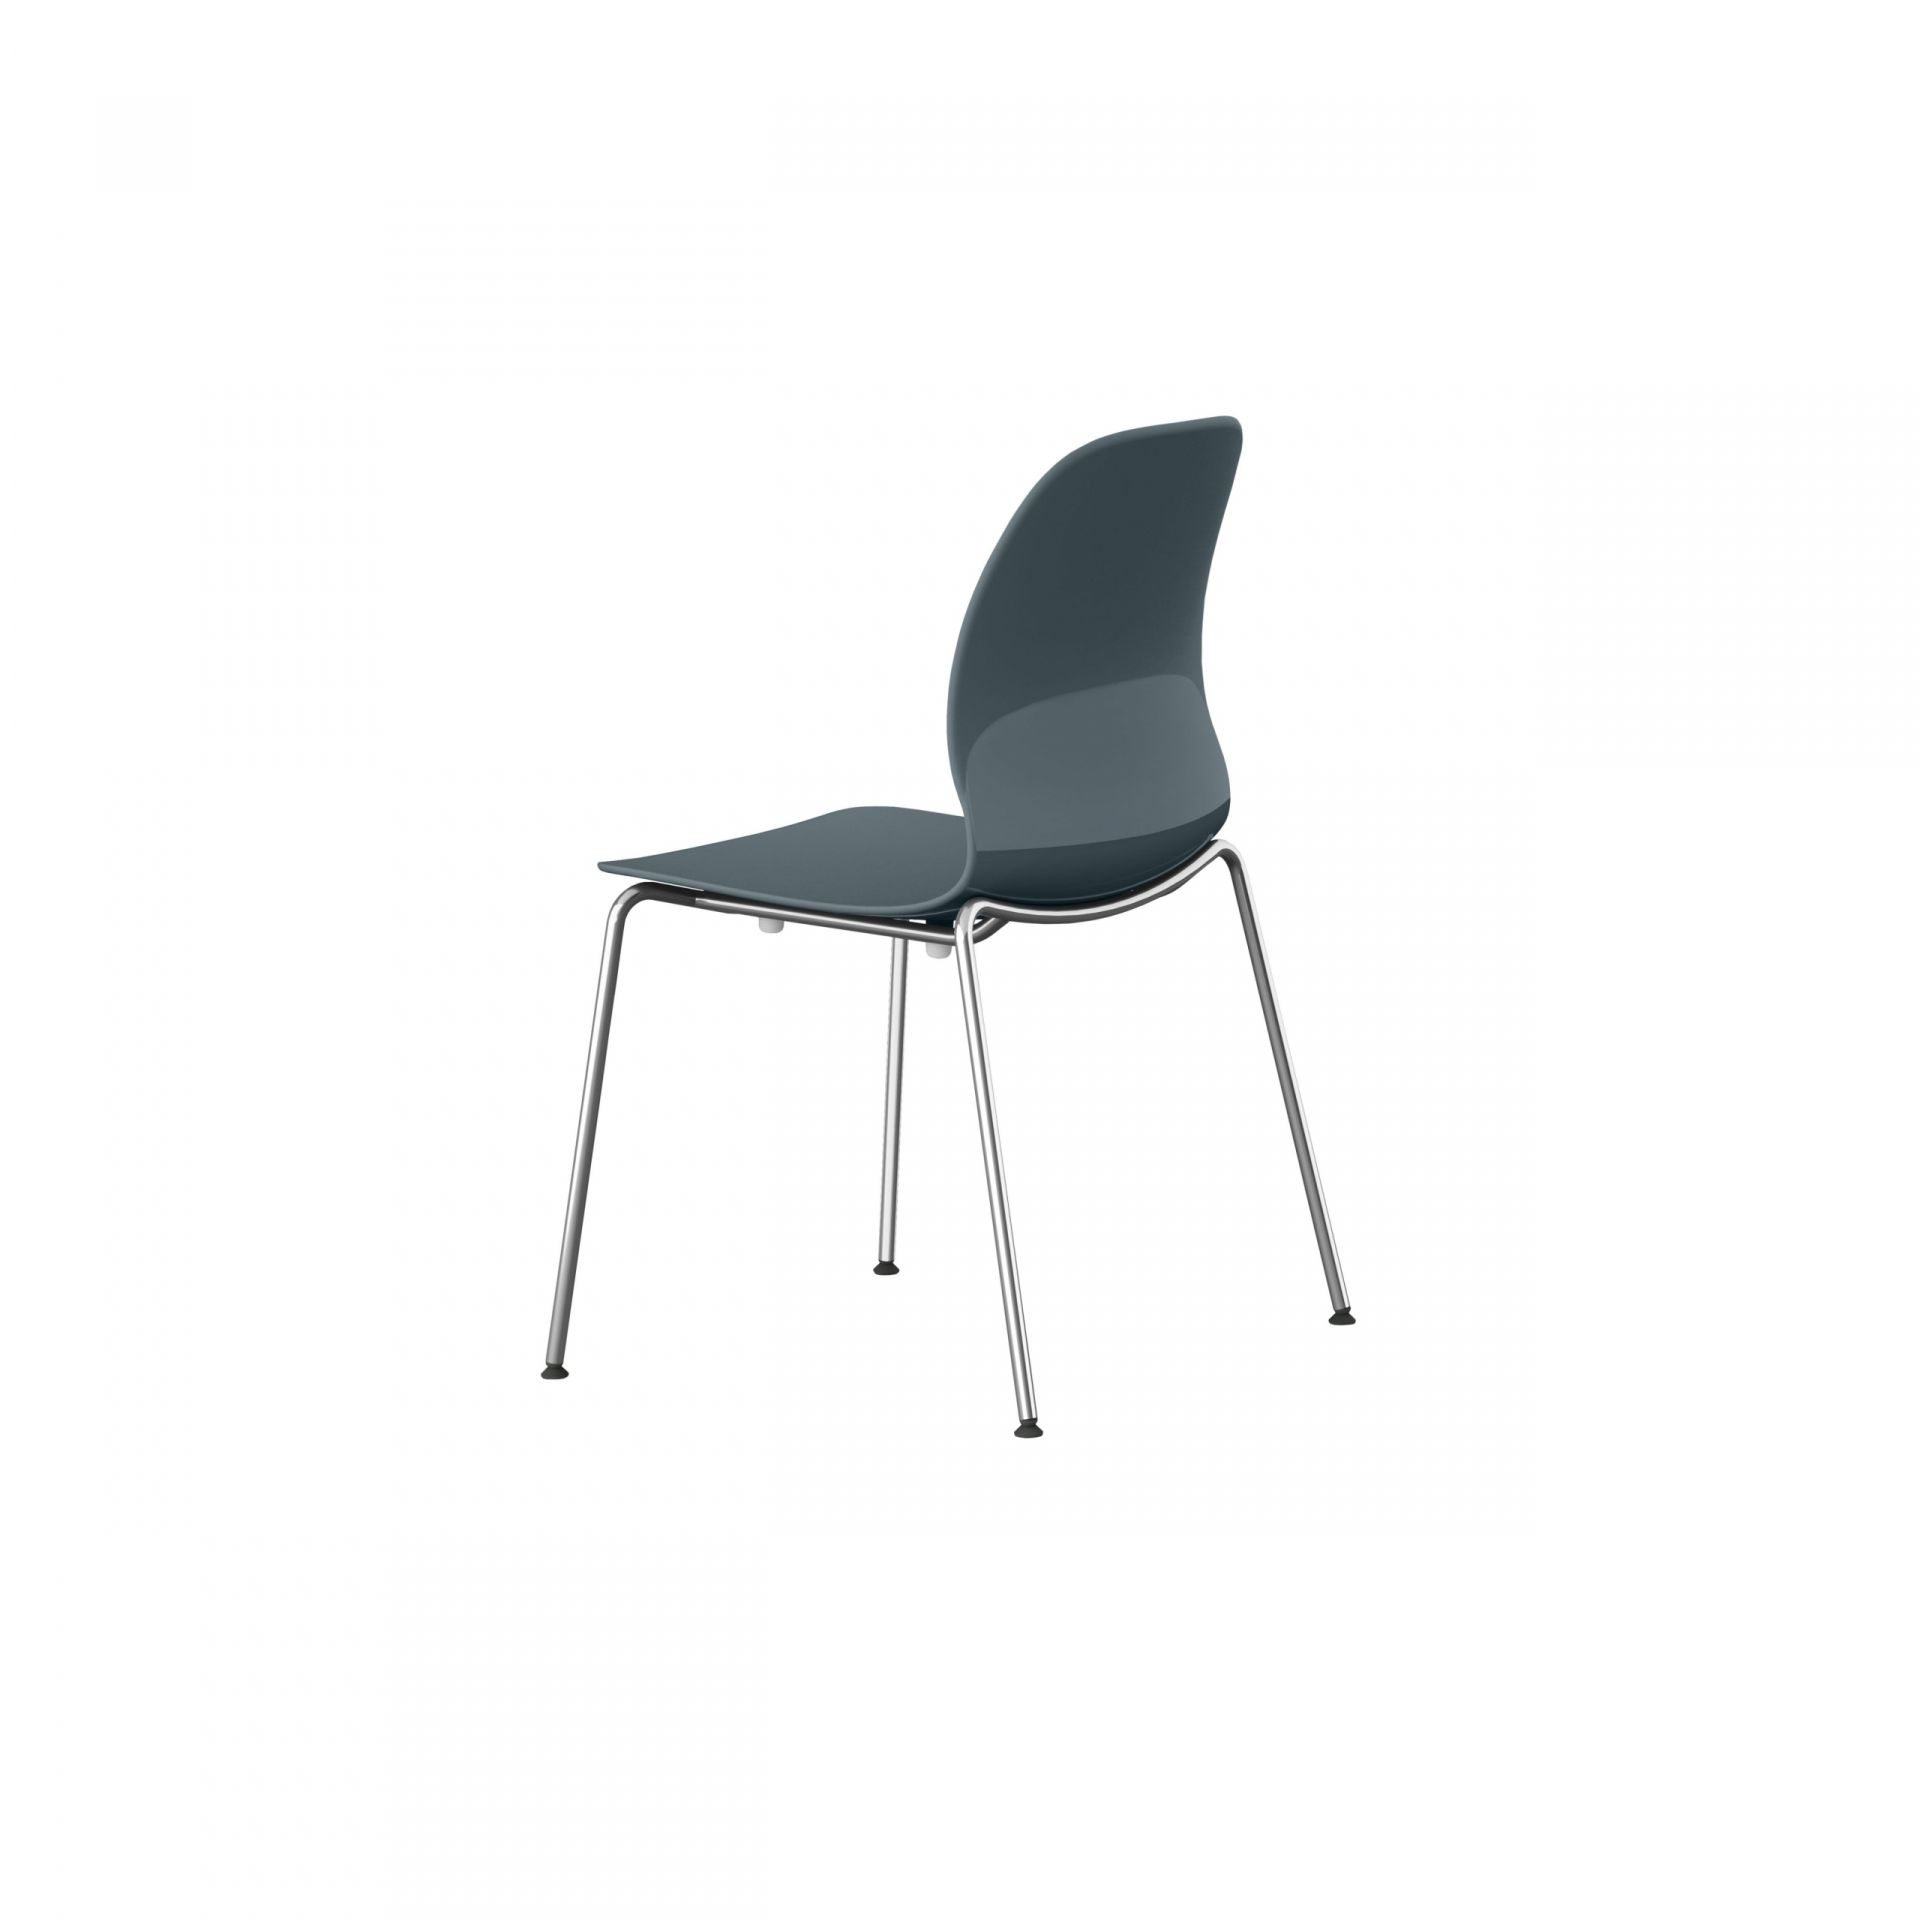 Archie Chair with metal legs product image 2